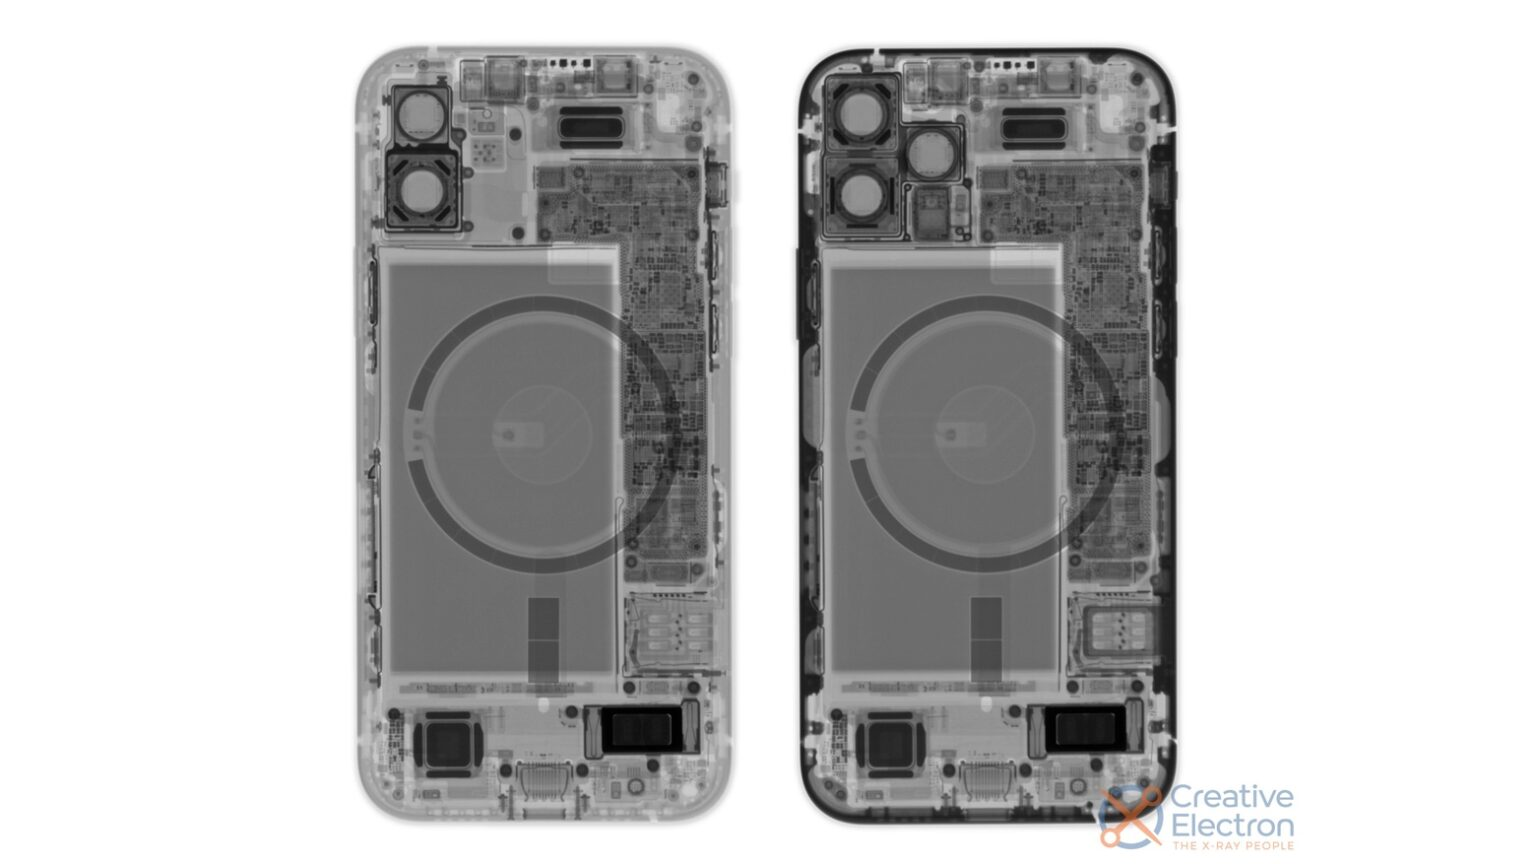 An iPhone 12 teardown wouldn't be complete without a cool X-ray.